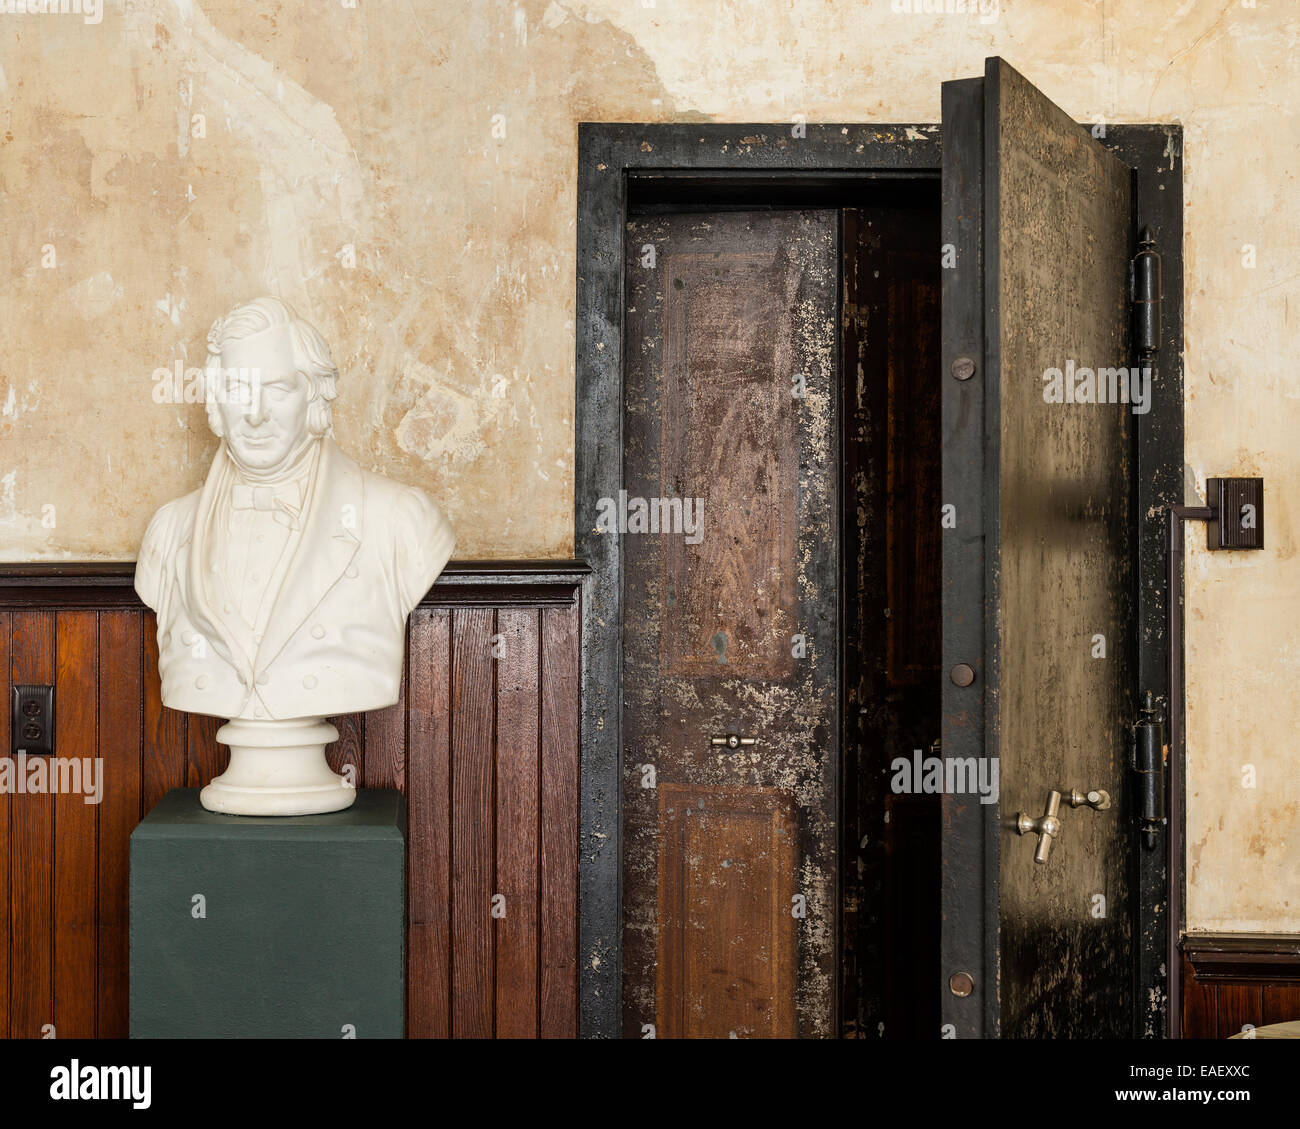 Plaster bust on green plinth in room with wooden wall panelling and large walk-in safe - Stock Image